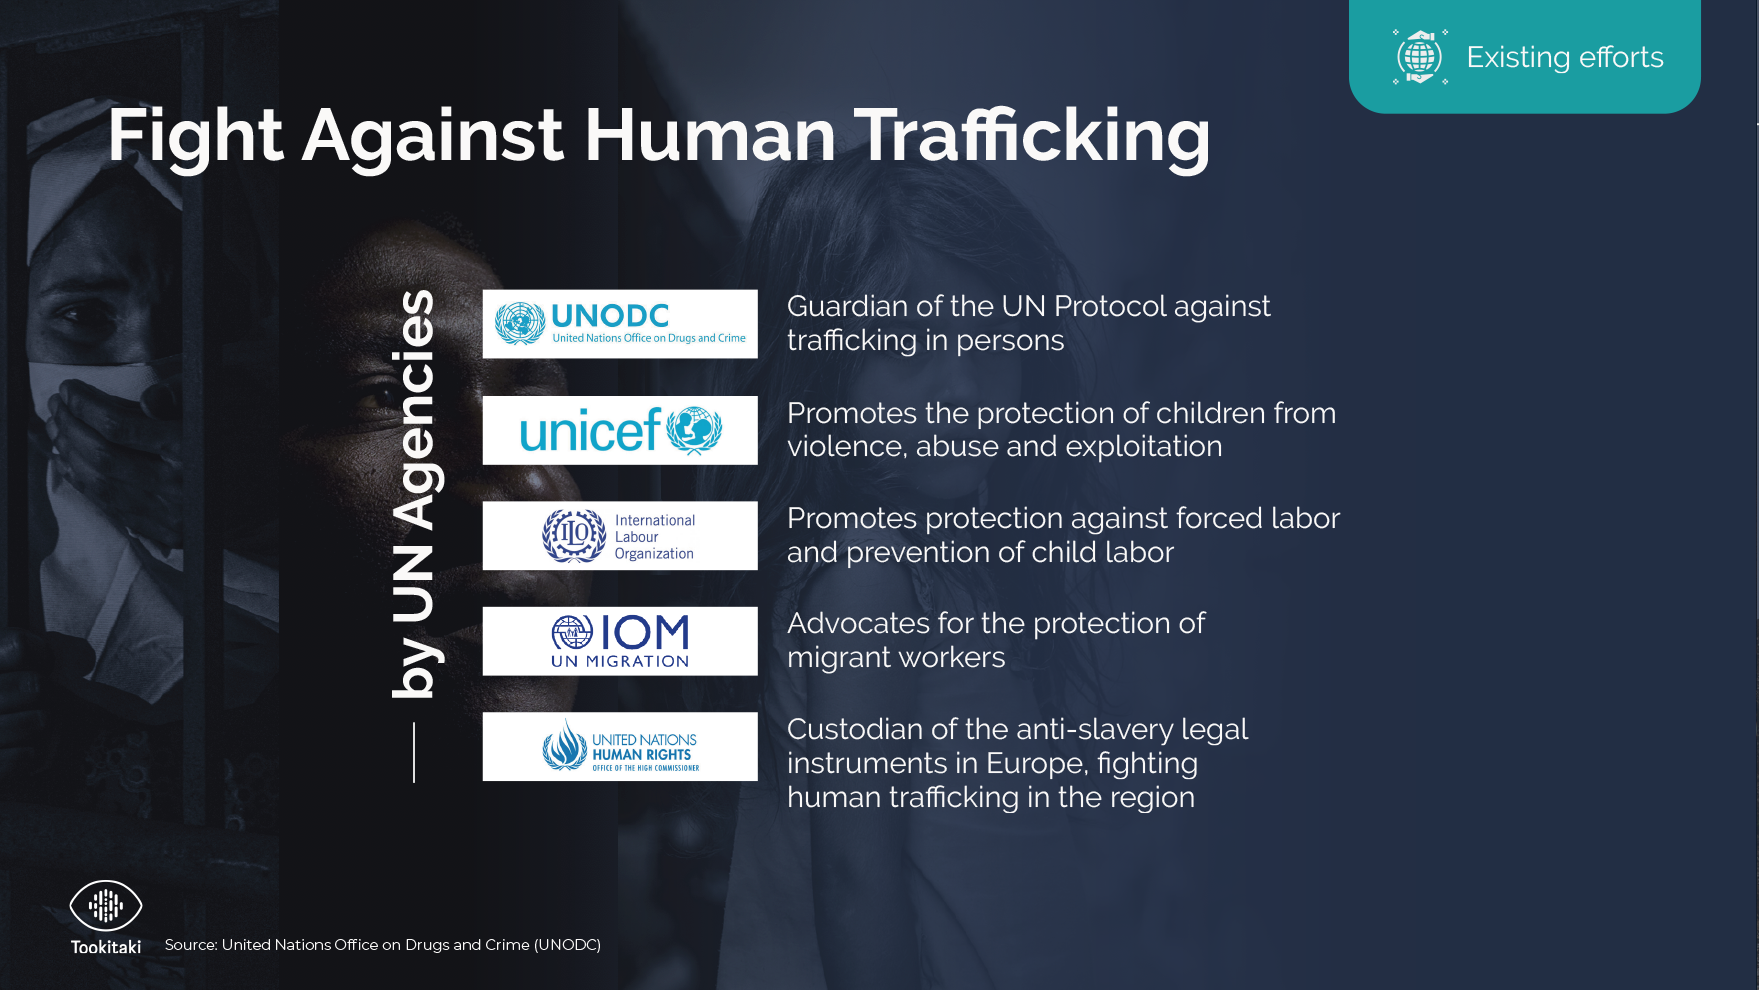 Fight Against Human Trafficking